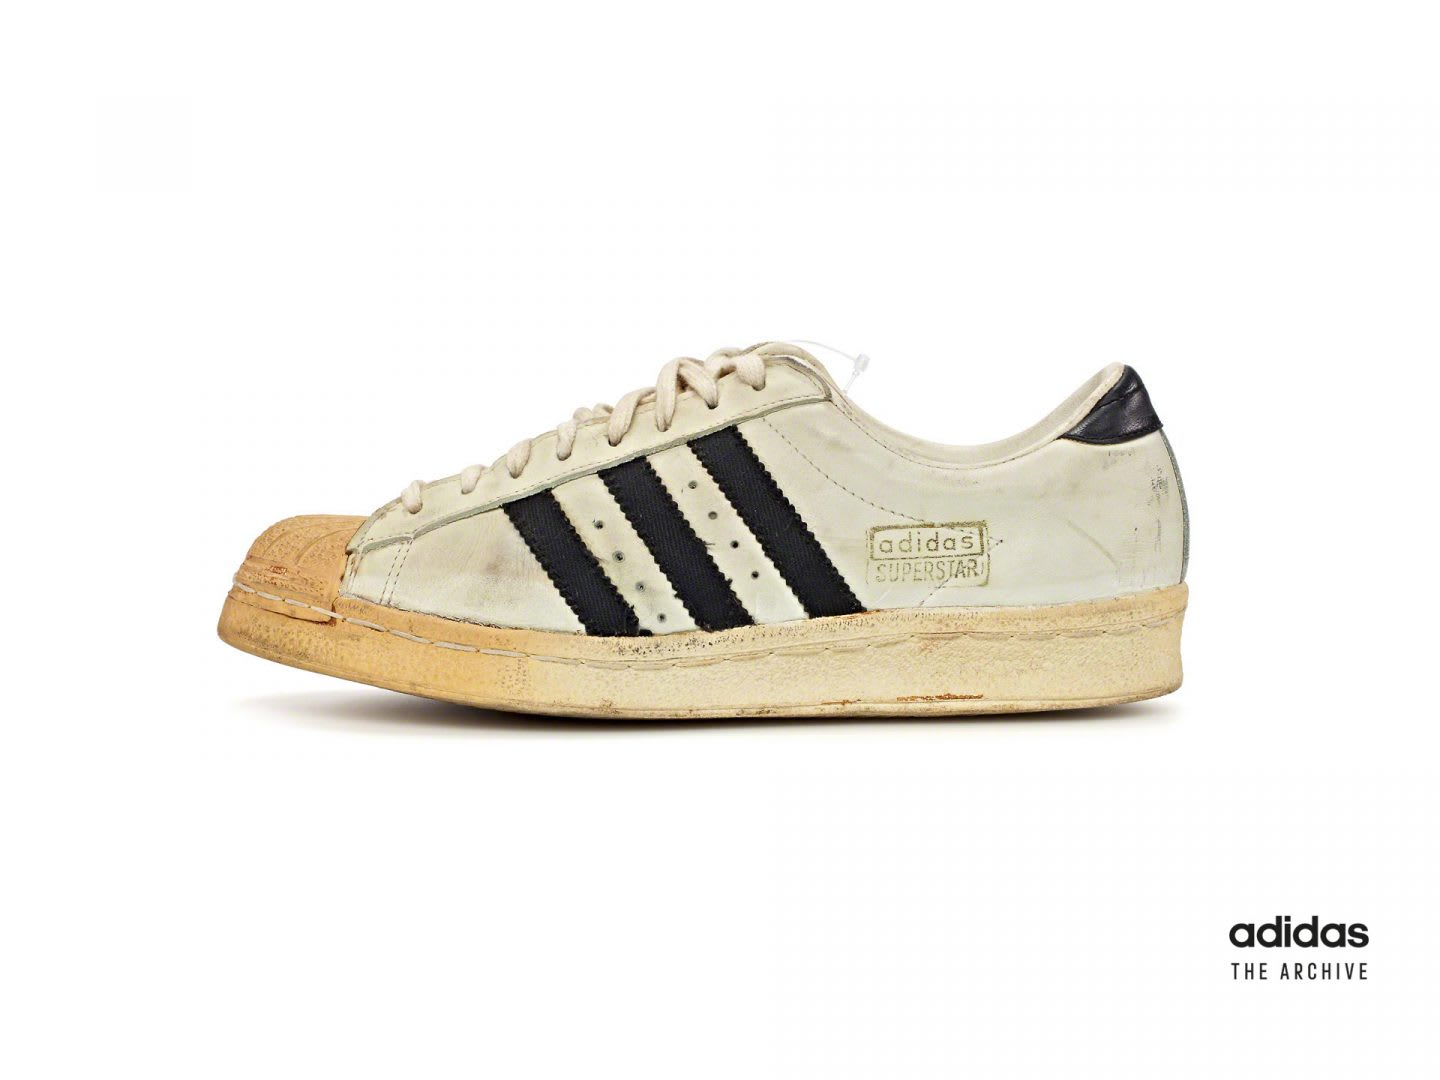 Image of one of the original adidas Superstars in white and black.